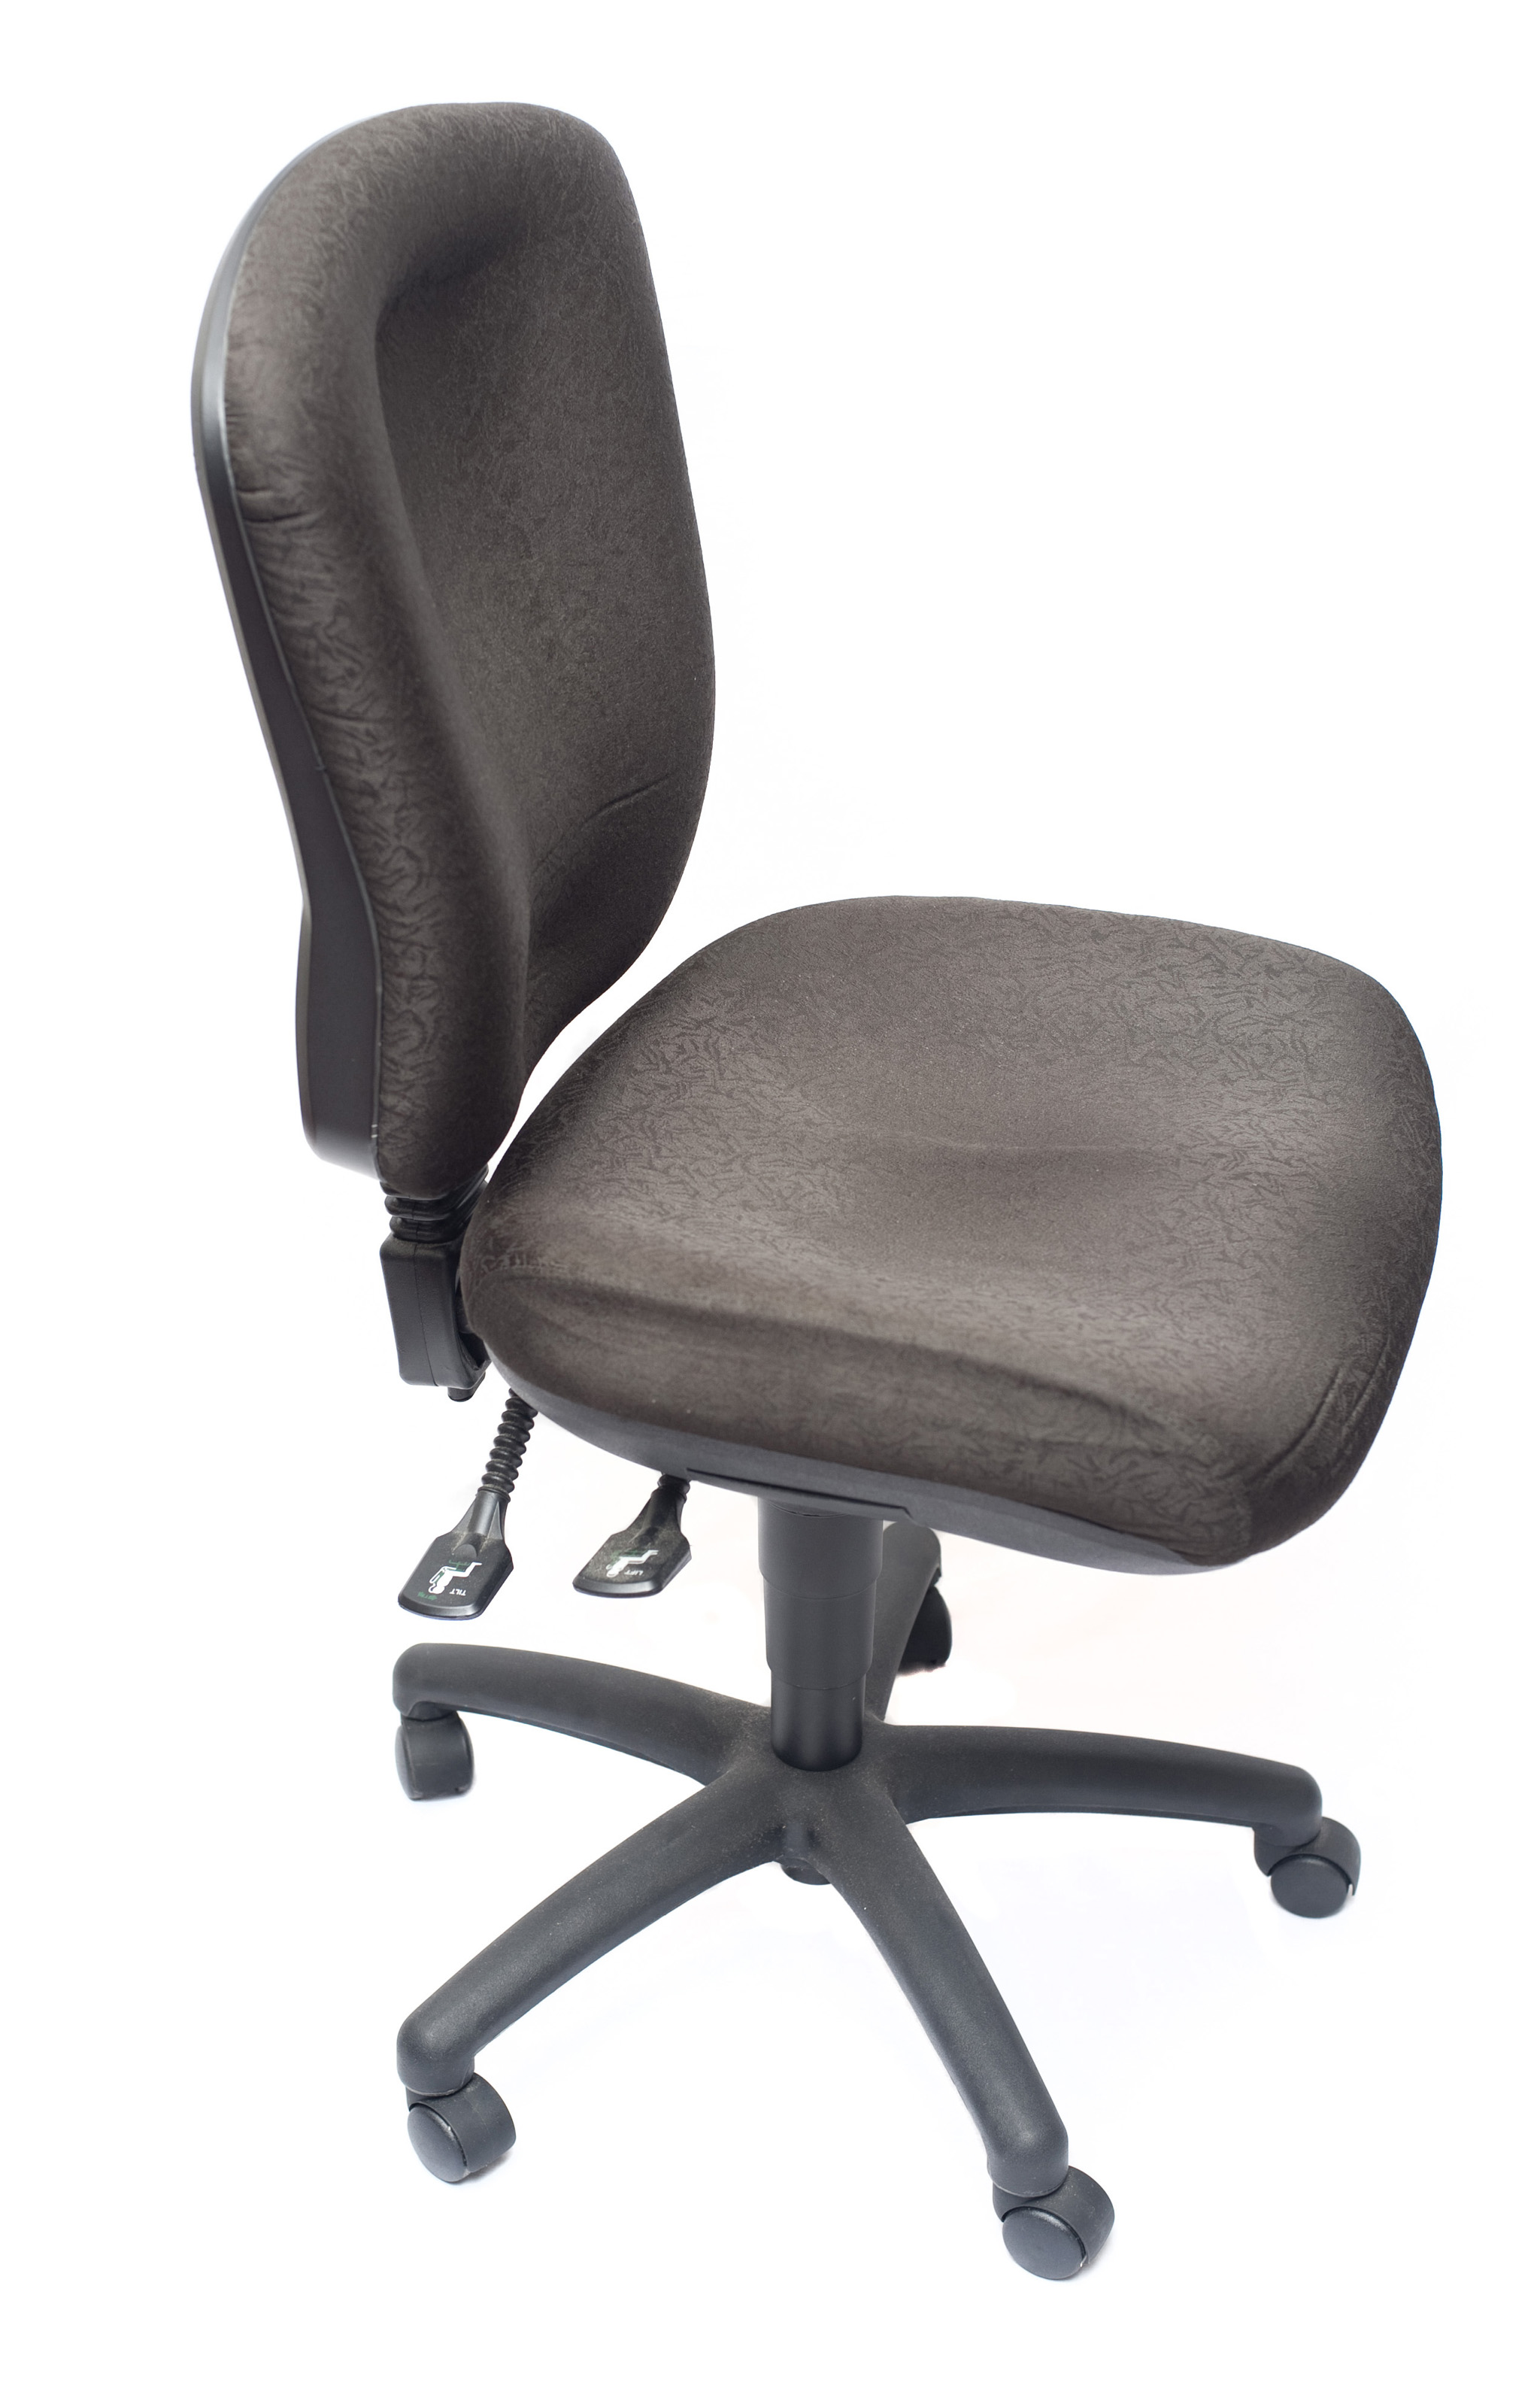 Free Stock Photo 5379 Comfortable black office chair | freeimageslive